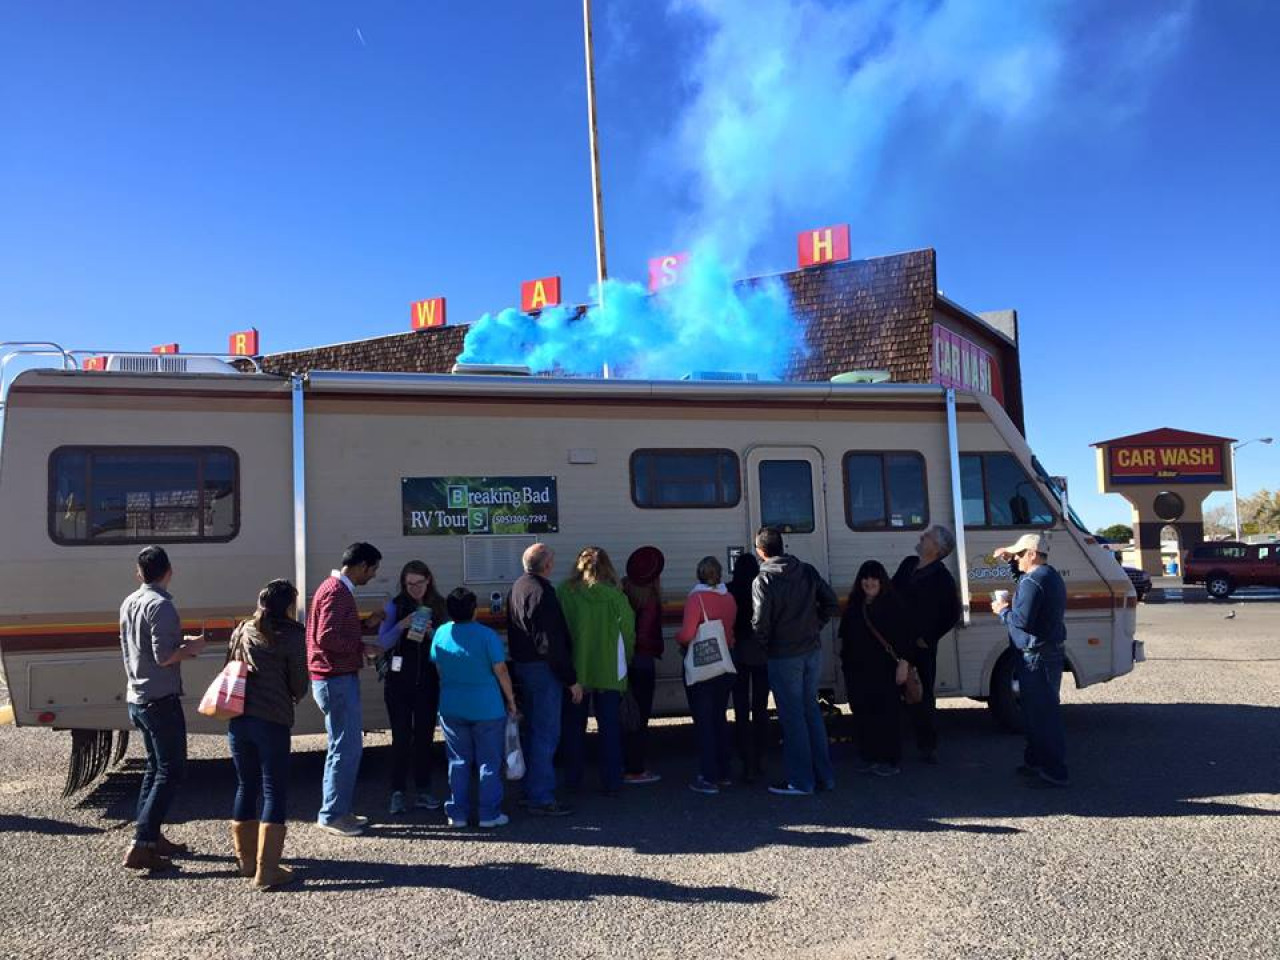 There might be blue smoke coming out of the RV, but don't worry, this tour is all above board.